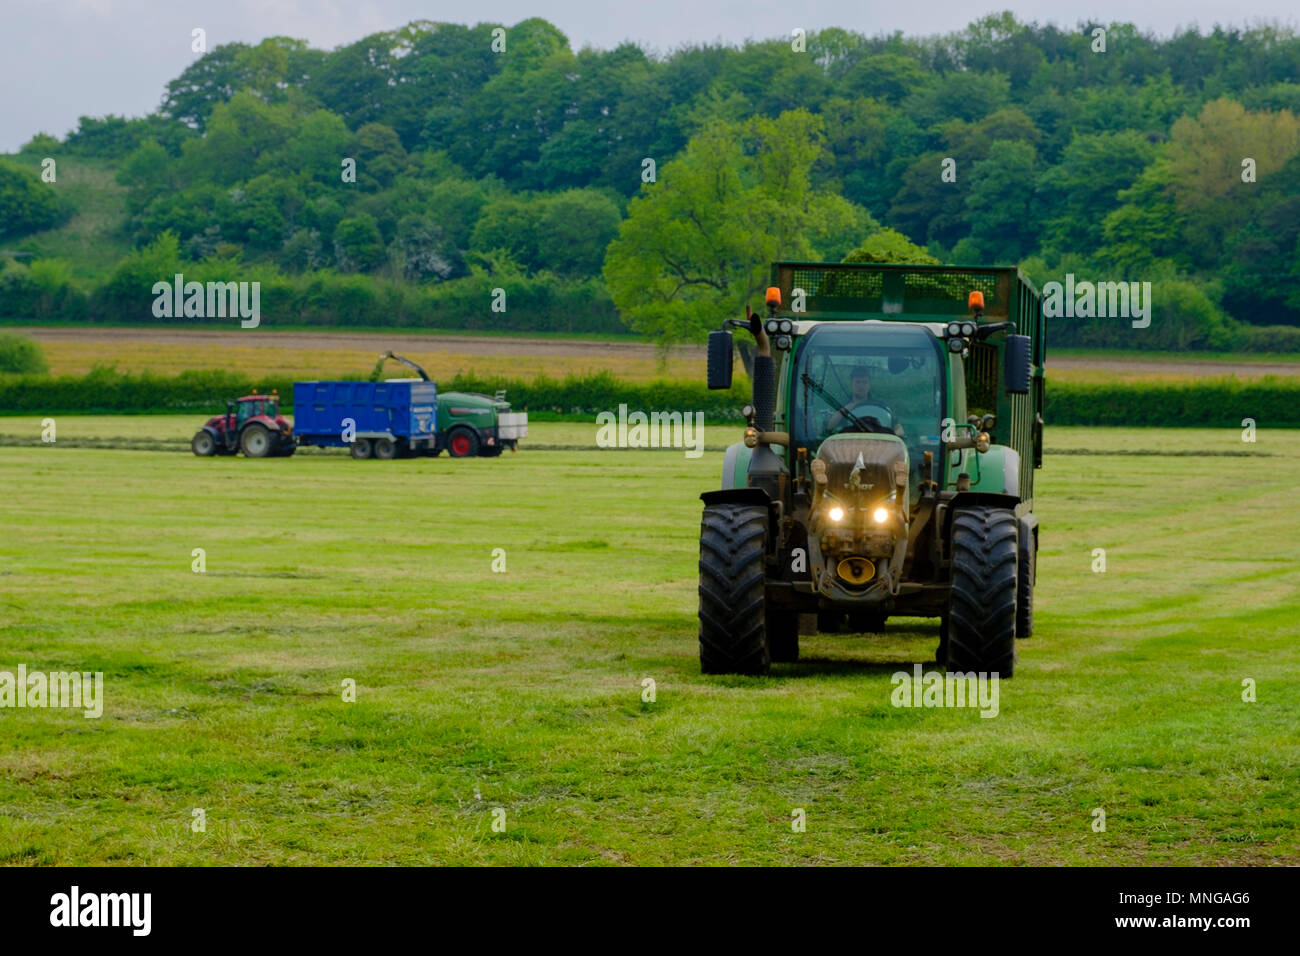 Life goes on in the countryside - silage gathering near Milborne Port, Dorset - Stock Image